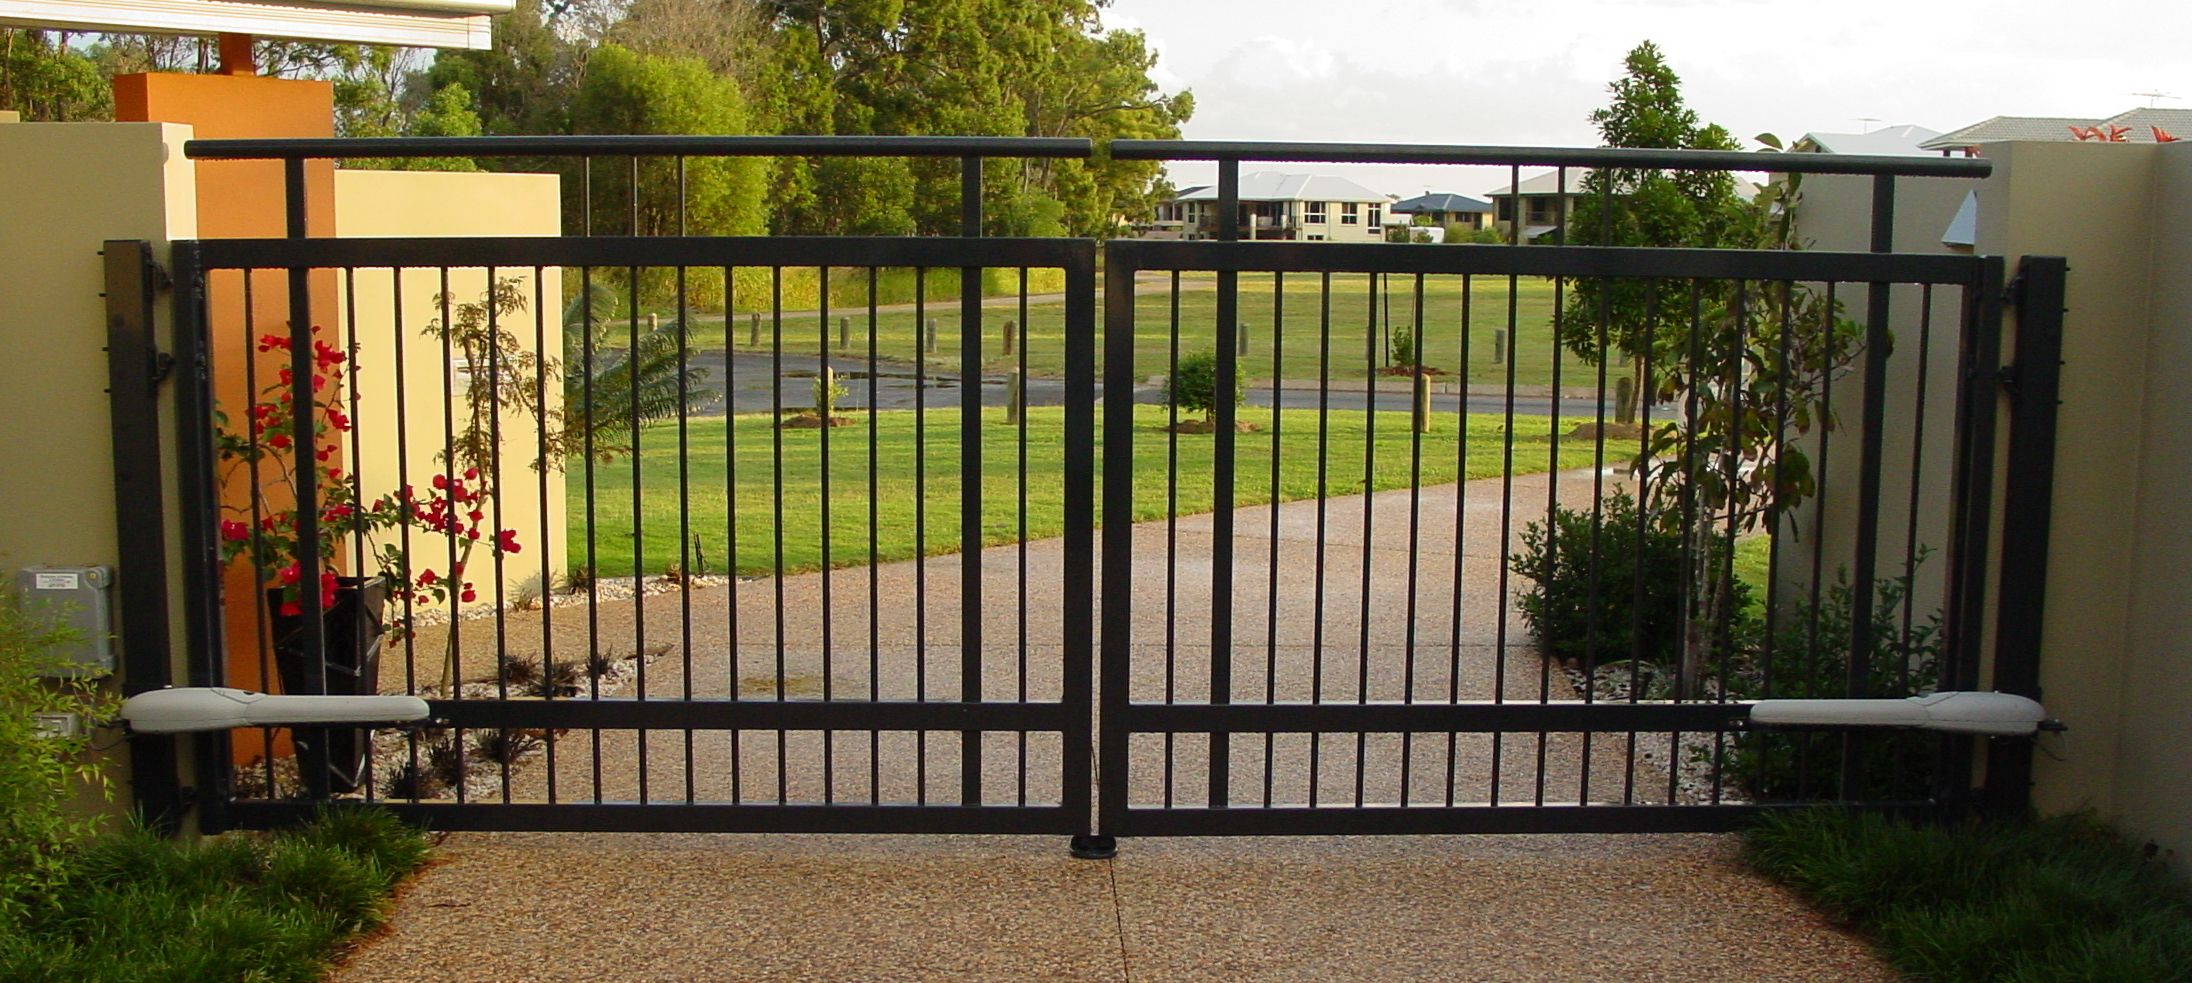 Automatic Gates Openers Residential Pictures Of Swinging Gates Image Gallery Brisbane